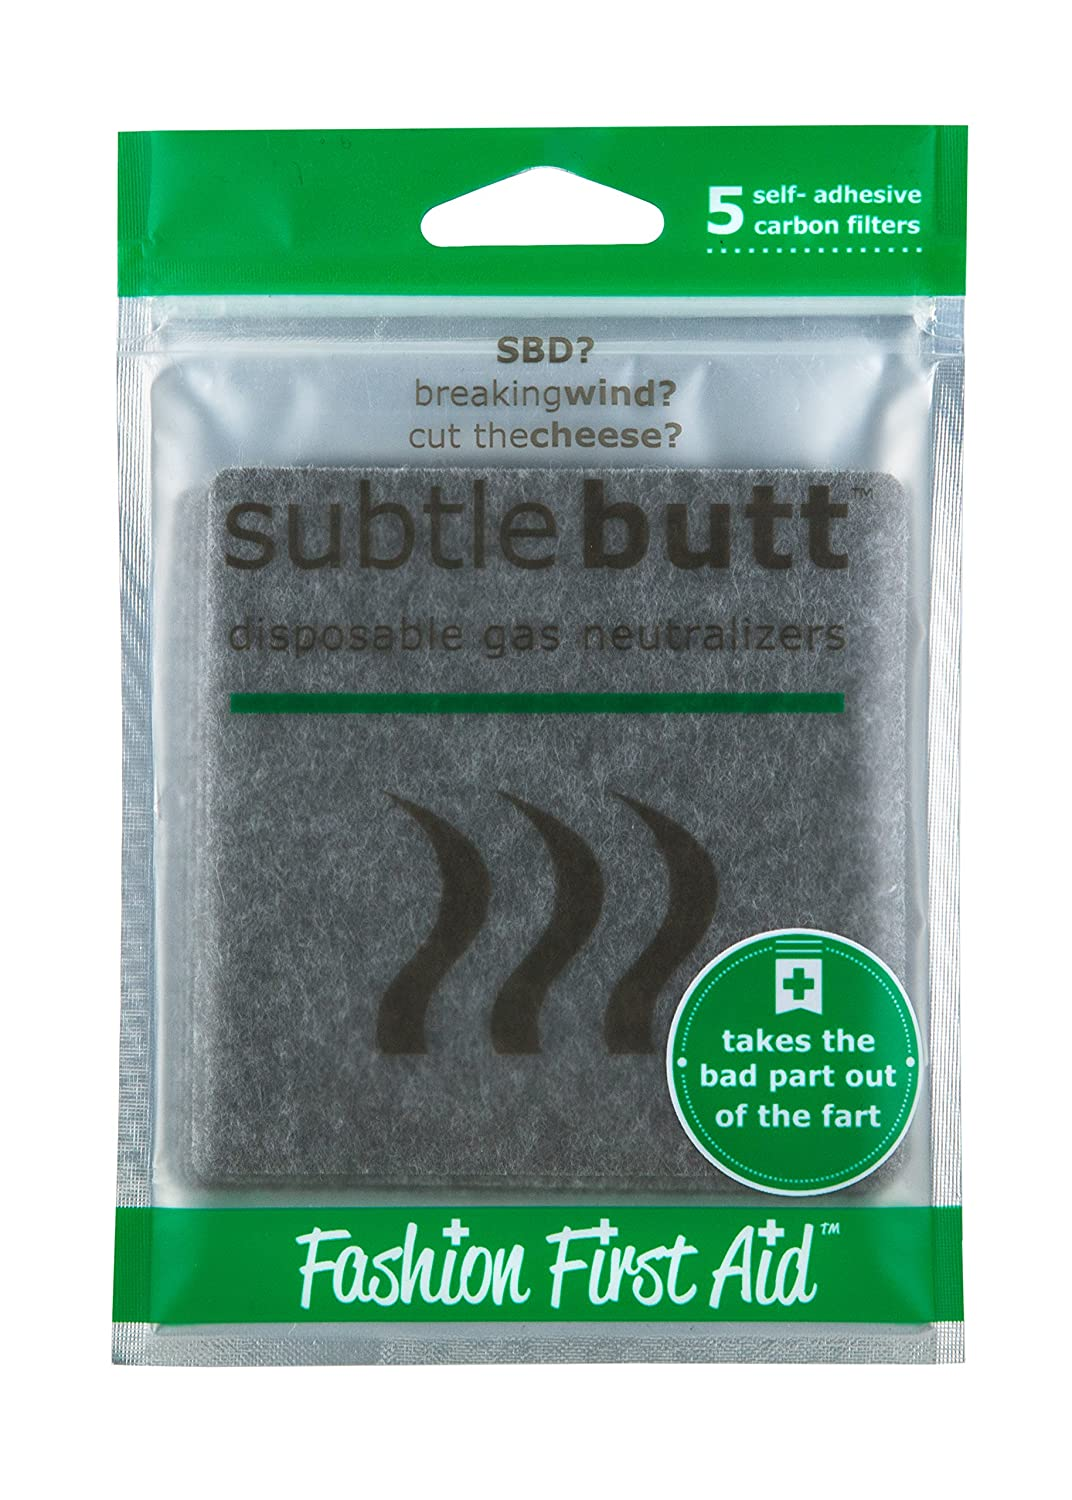 Amazon.com: Subtle Butt: disposable gas neutralizers (5 saving graces):  Health & Personal Care